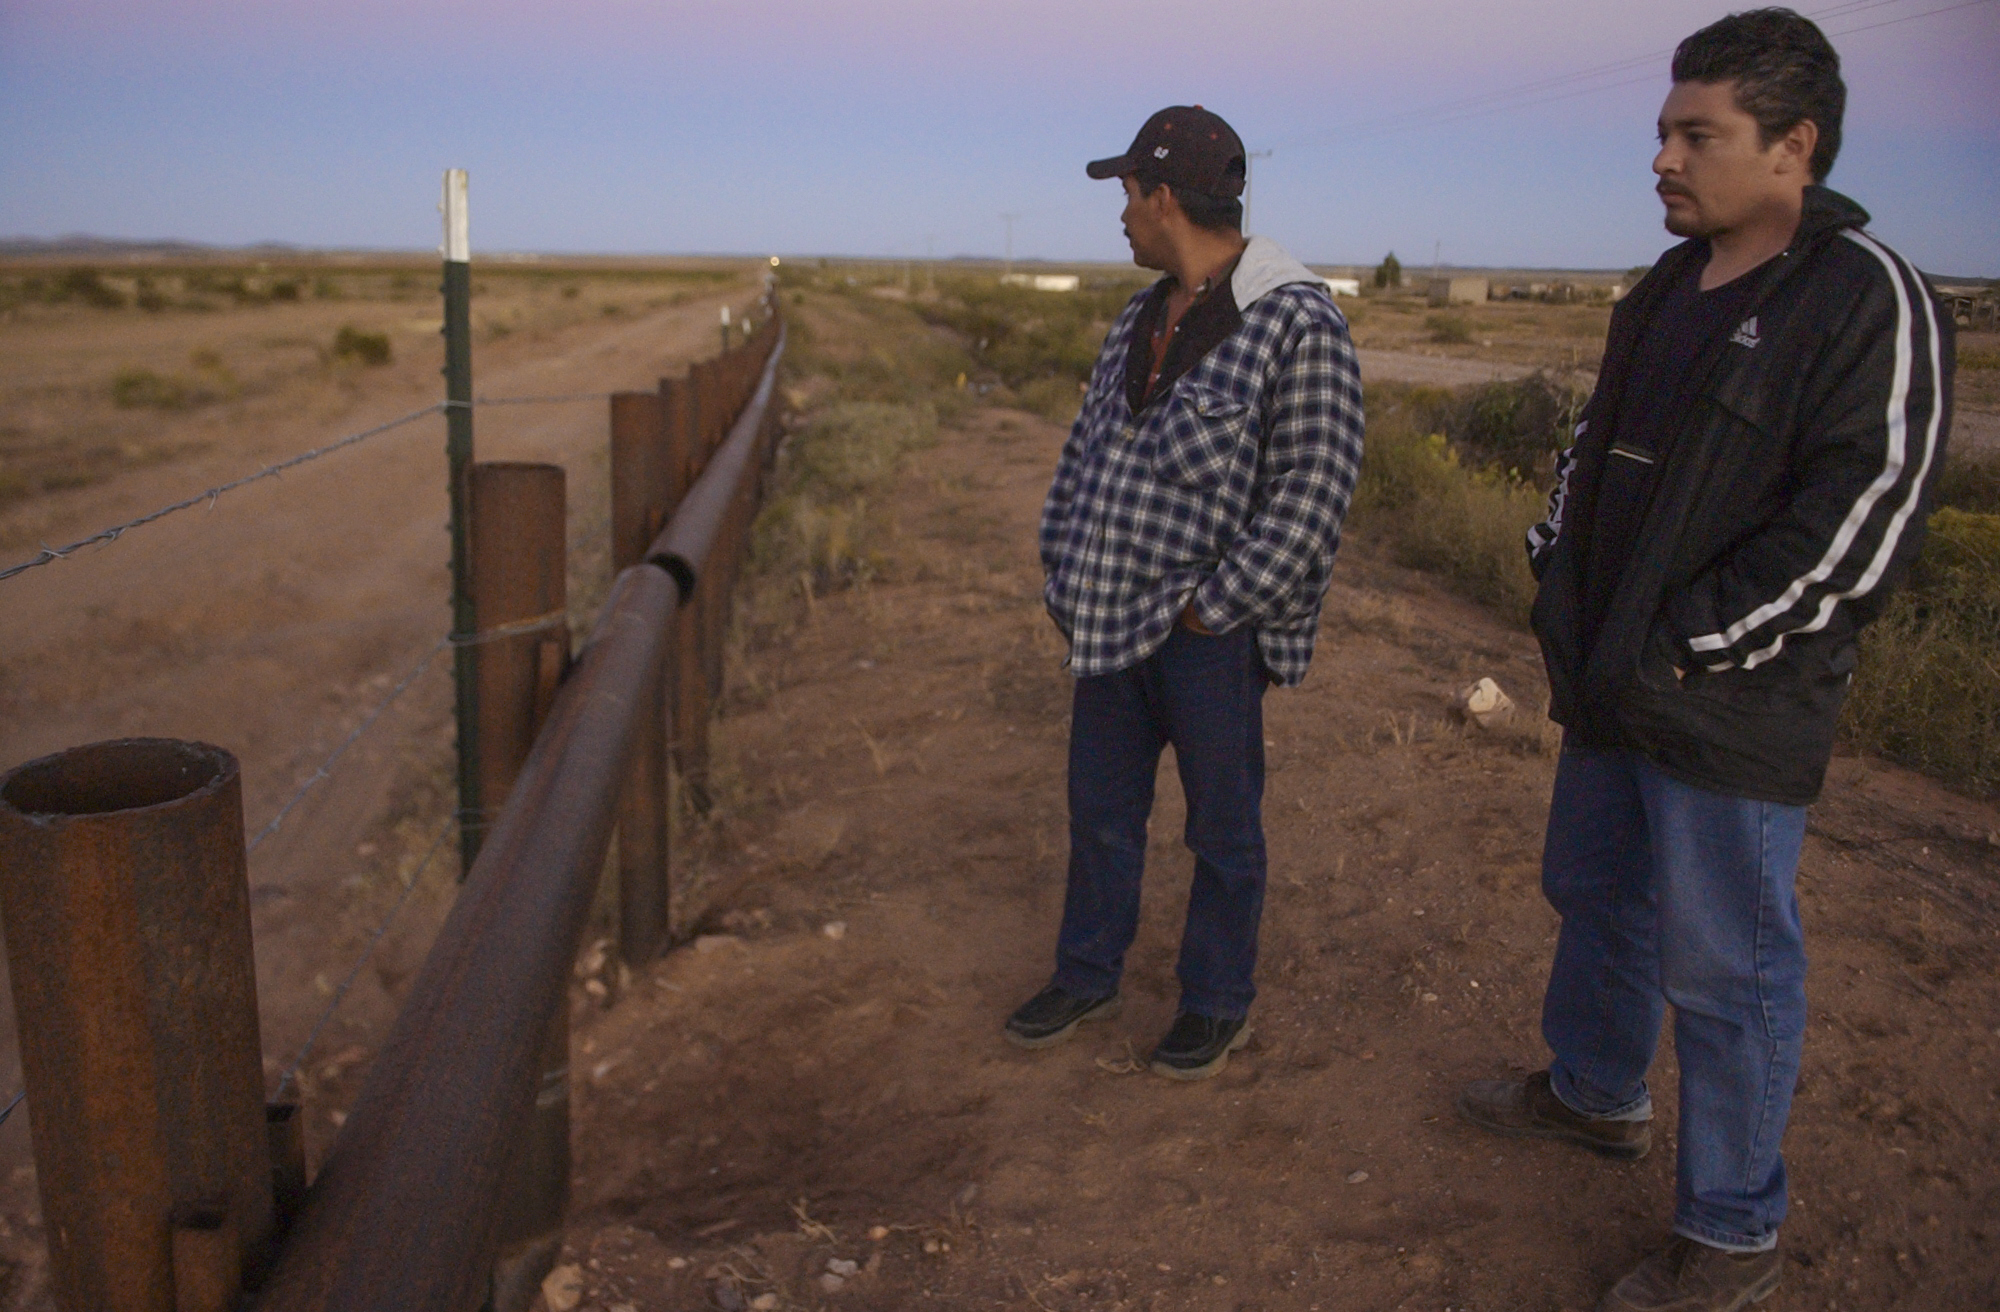 Timing while standing at the border fence.